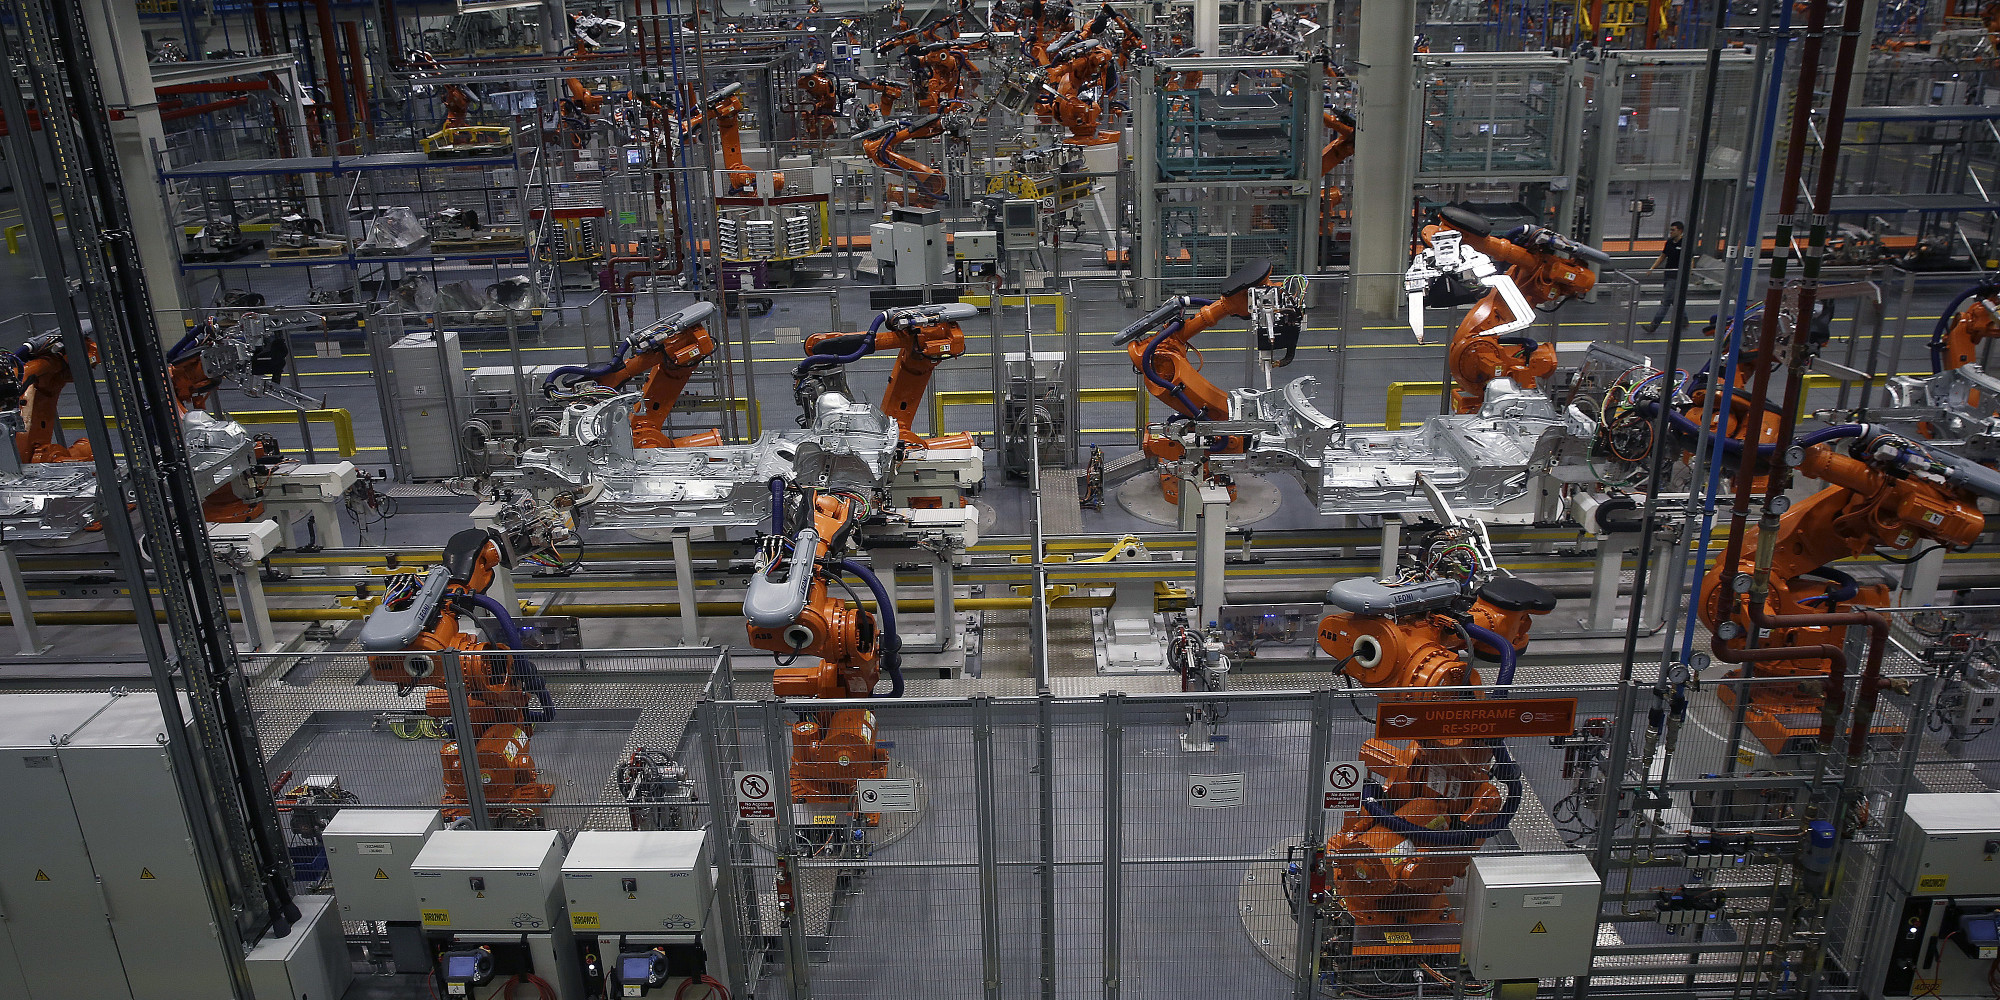 automation spelling doom for manufacturing hotspots